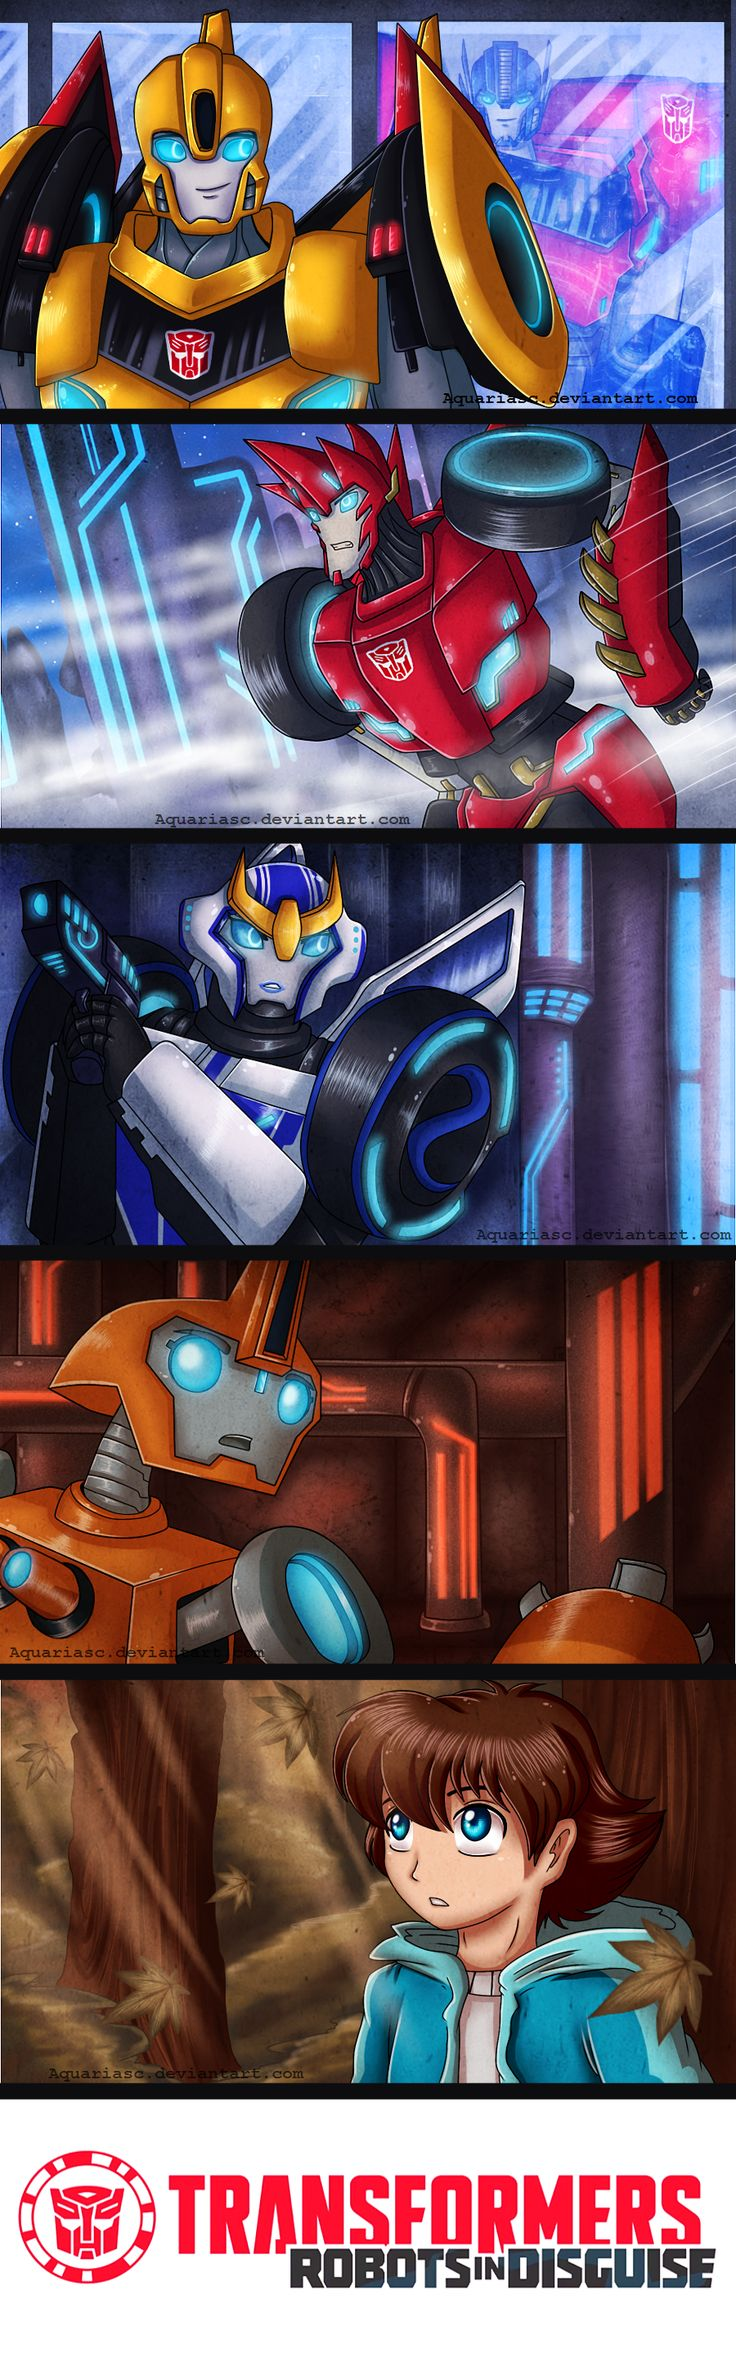 .: Transformers: Robots in Disguise 2015 :. by AquariaSC.deviantart.com on @deviantART